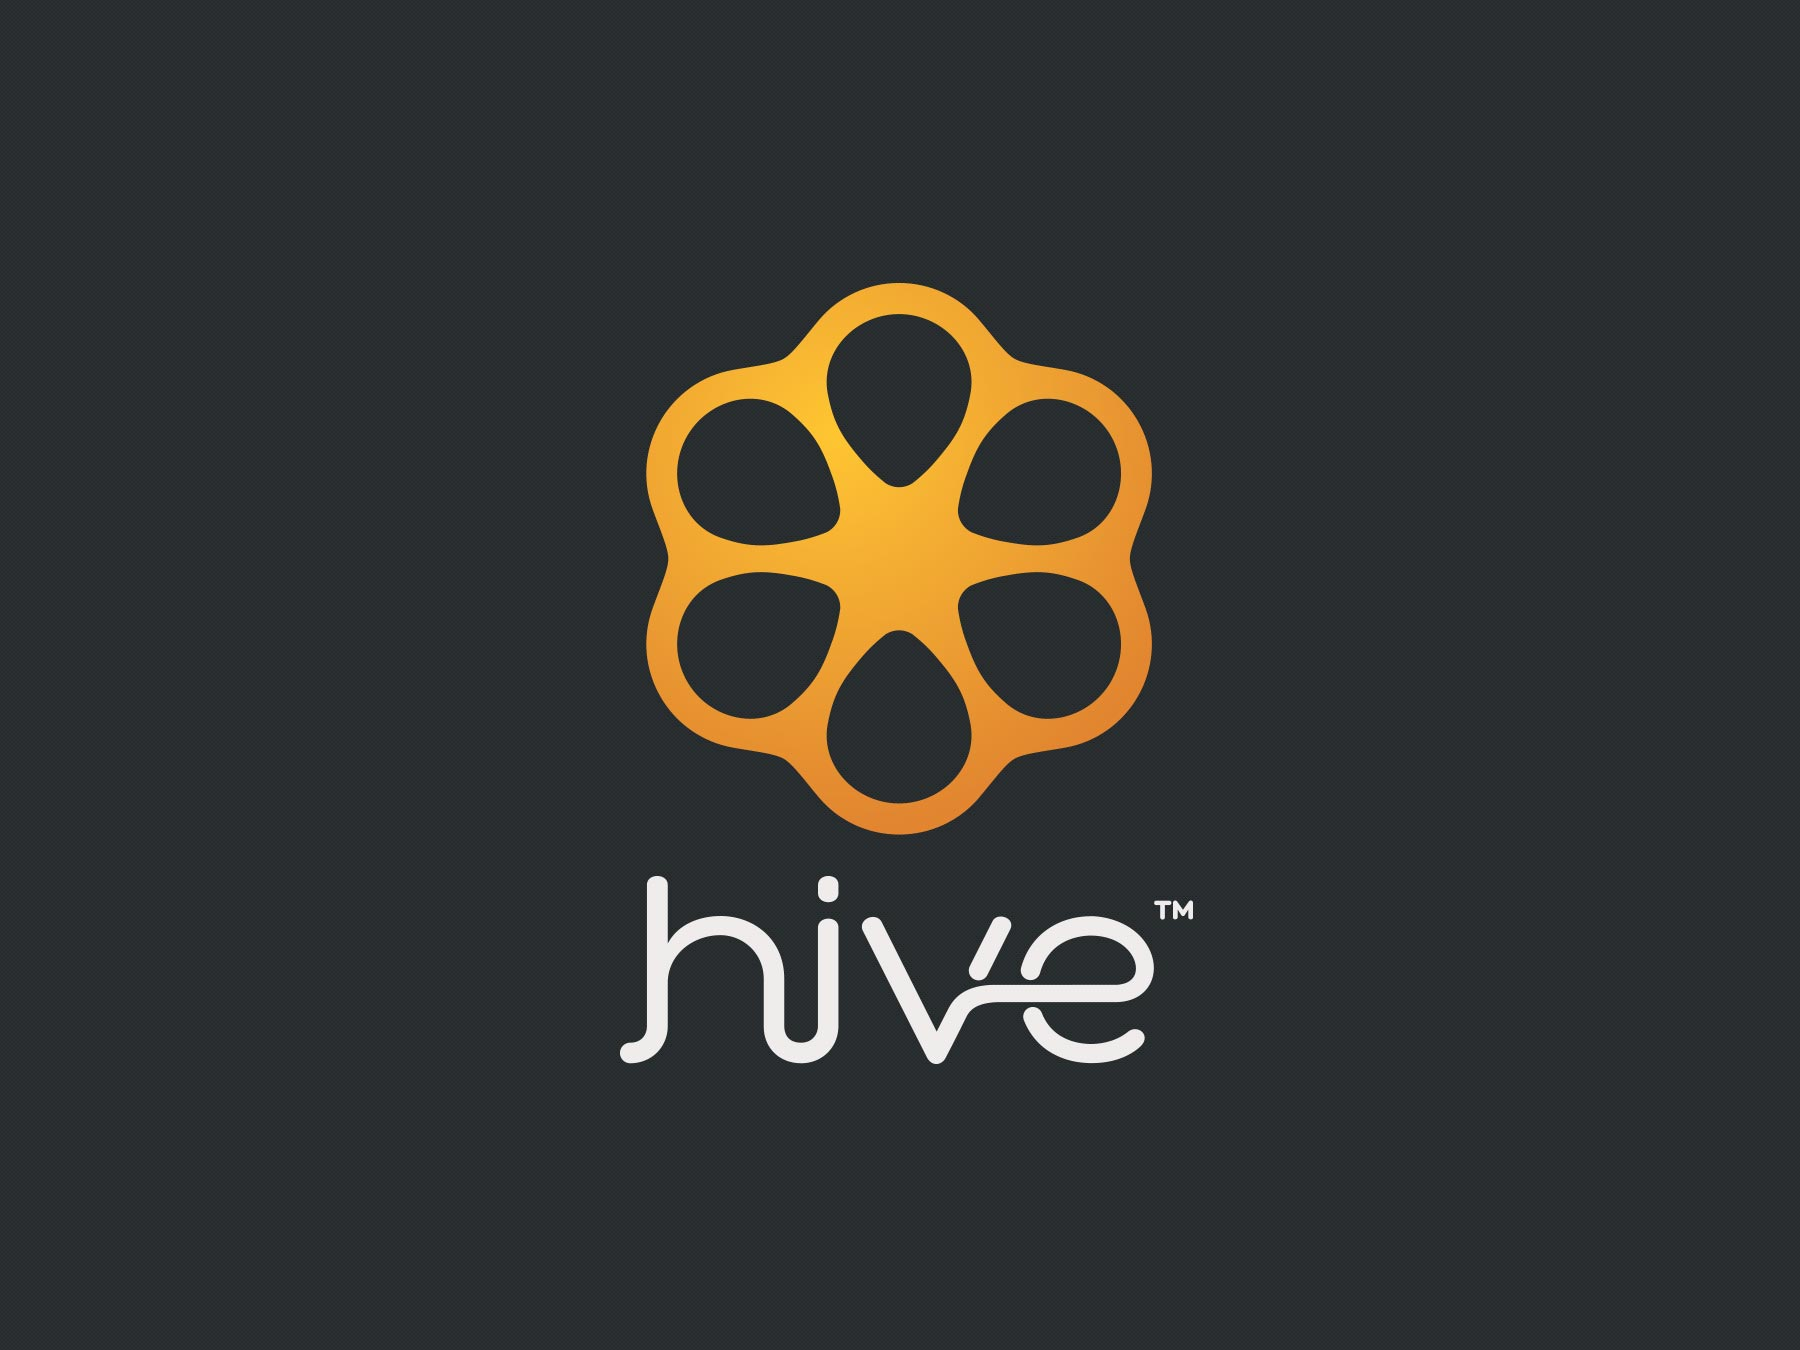 - In addition to the product itself, a concept was in the works to simultaneously create a customer resource site called Hive where Thrive users could search for and read up on church communications best practices. Playing off of the Thrive icon shape, I designed a fitting companion logo to brand the Hive website.